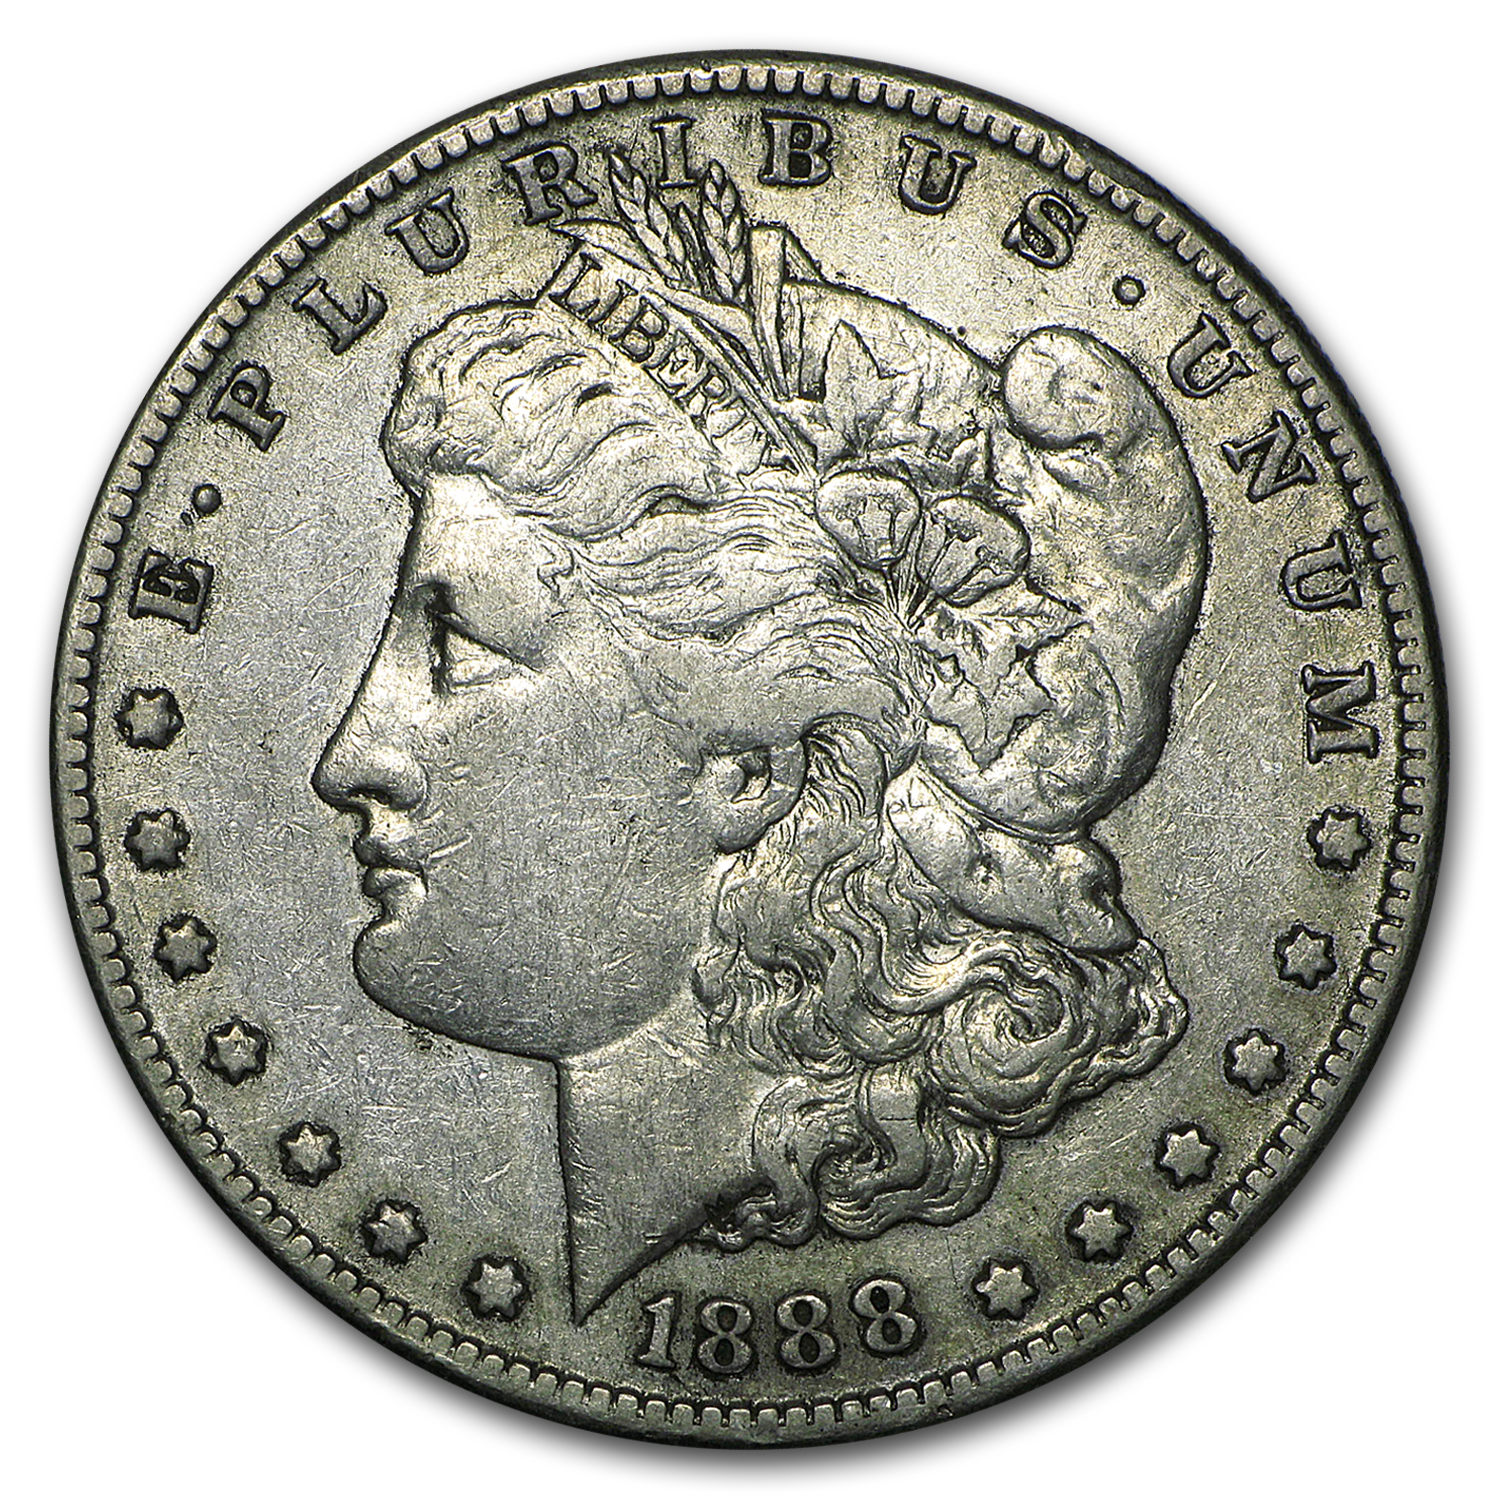 1888-S Morgan Dollar - Very Fine